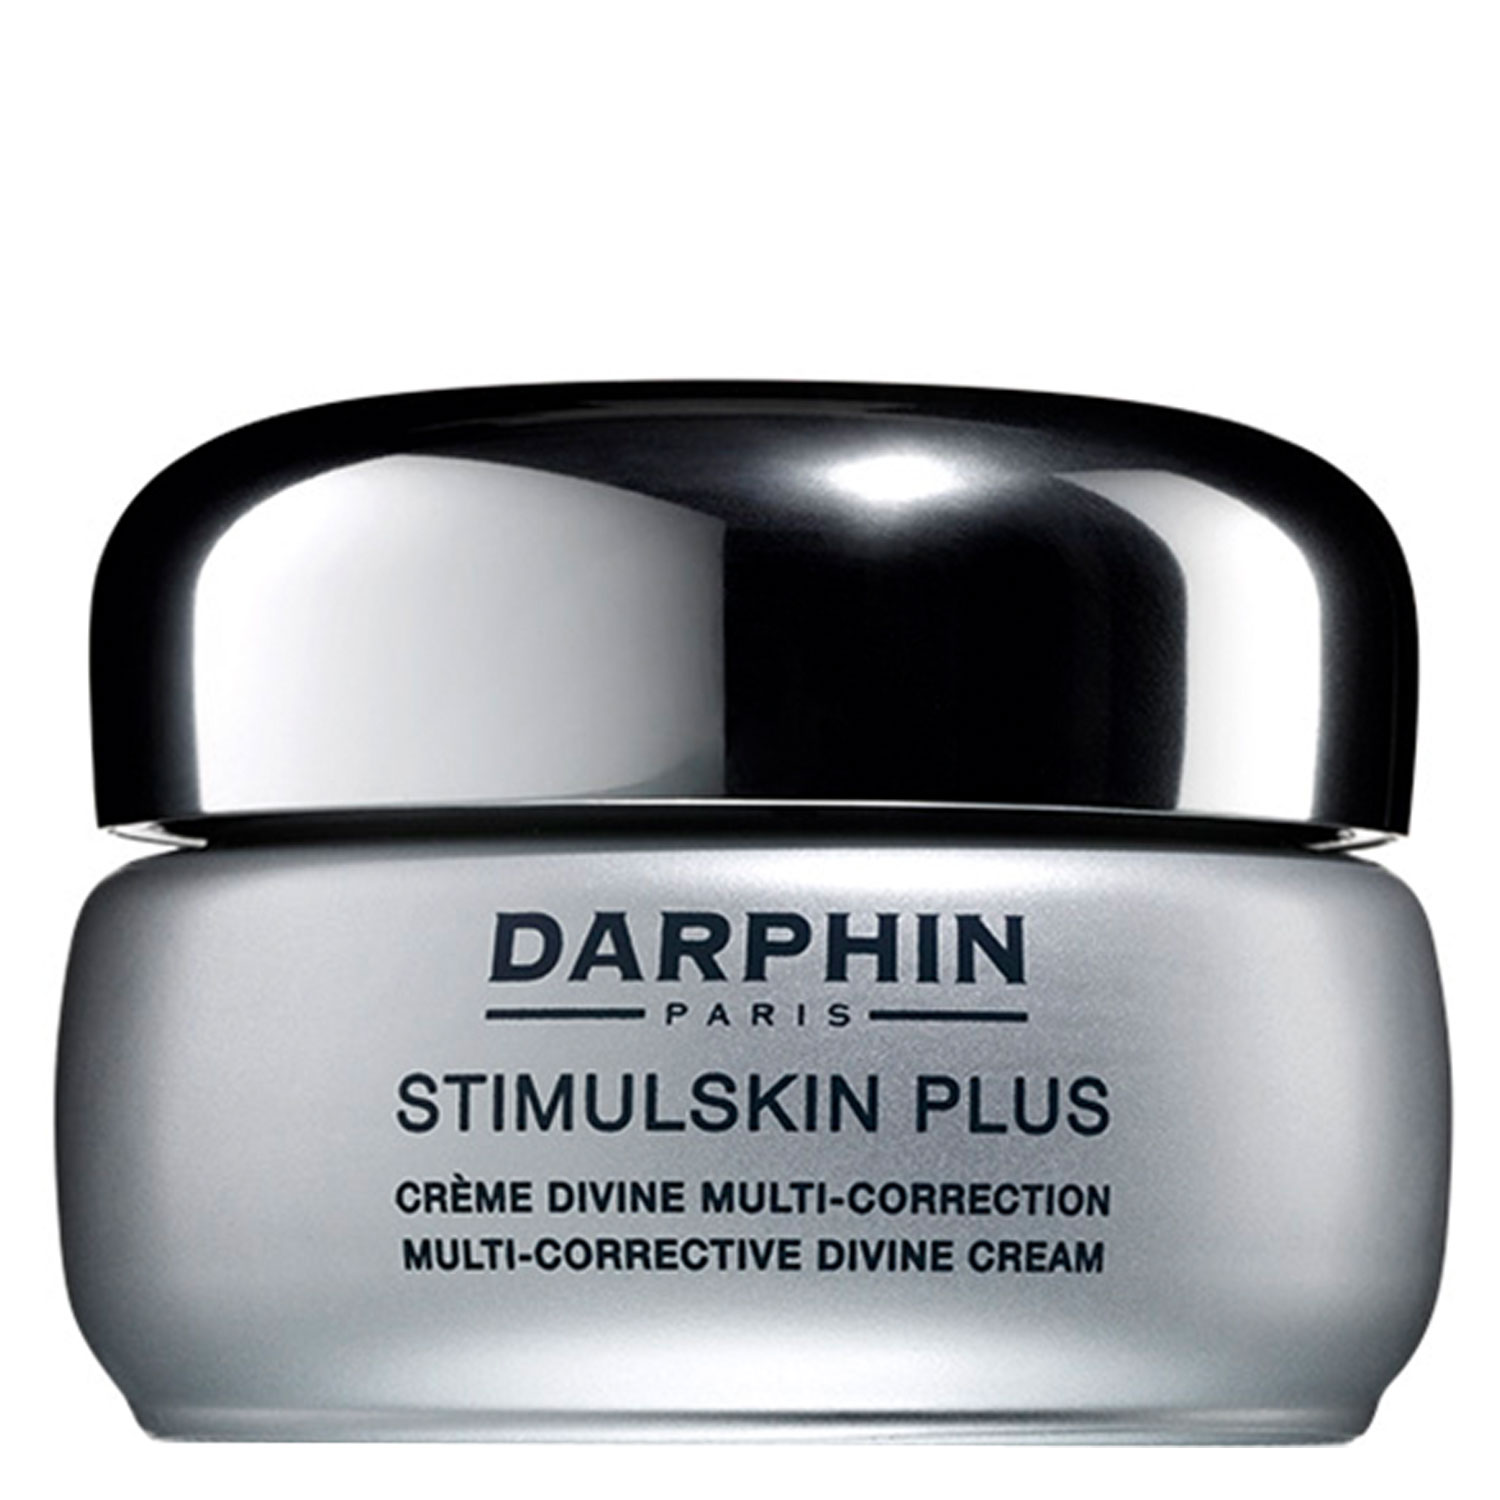 STIMULSKIN PLUS - Multi-Corrective Divine Cream Normal to Dry skin - 50ml